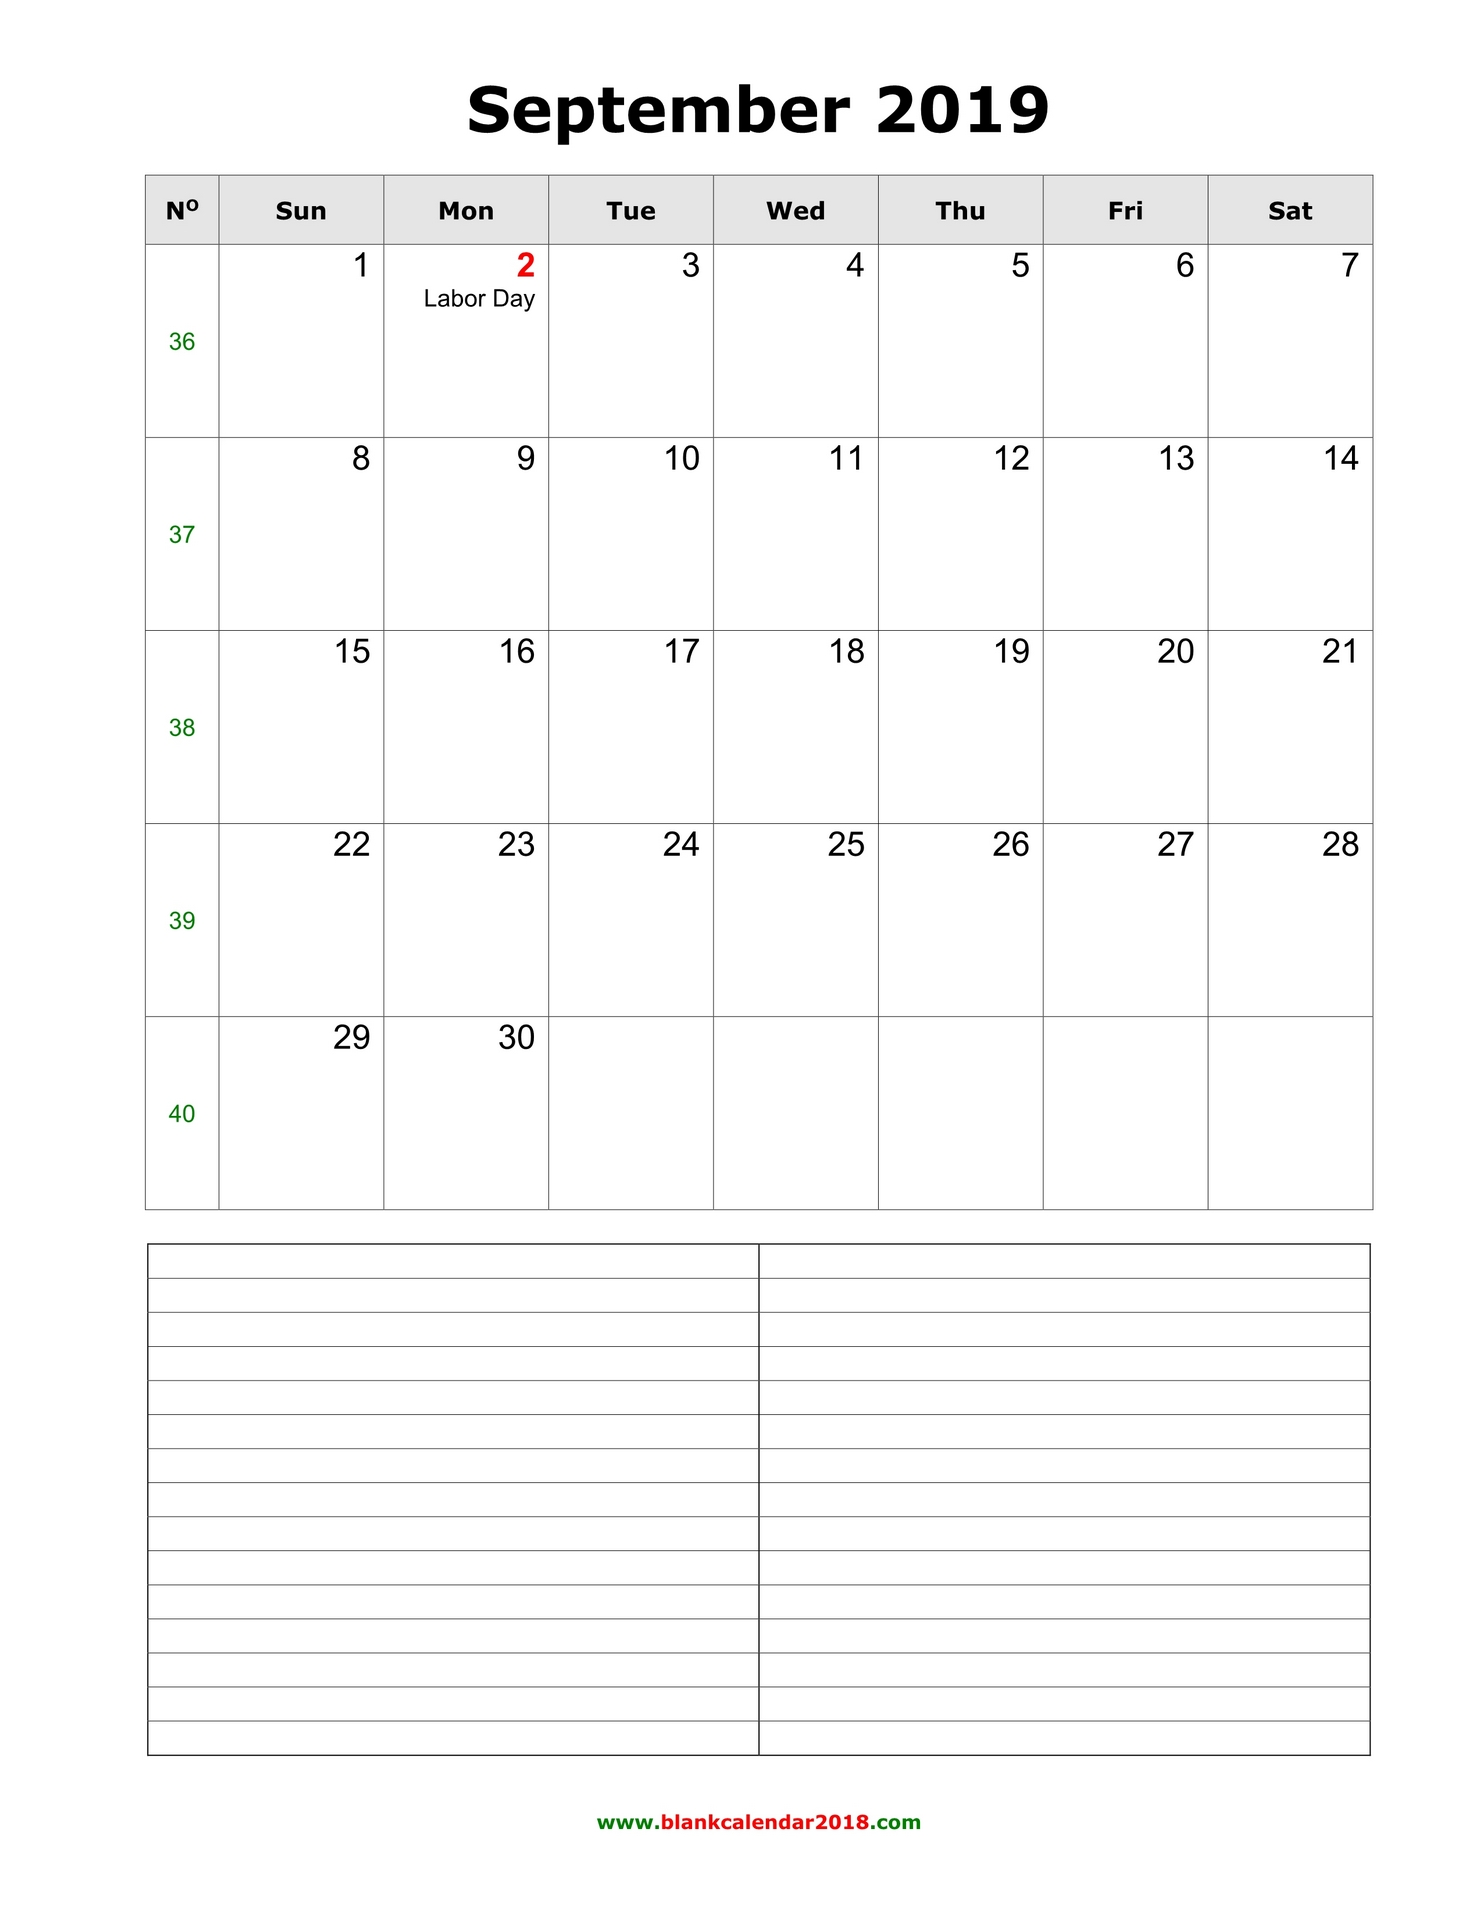 photograph regarding Printable September Calendar titled Blank Calendar for September 2019